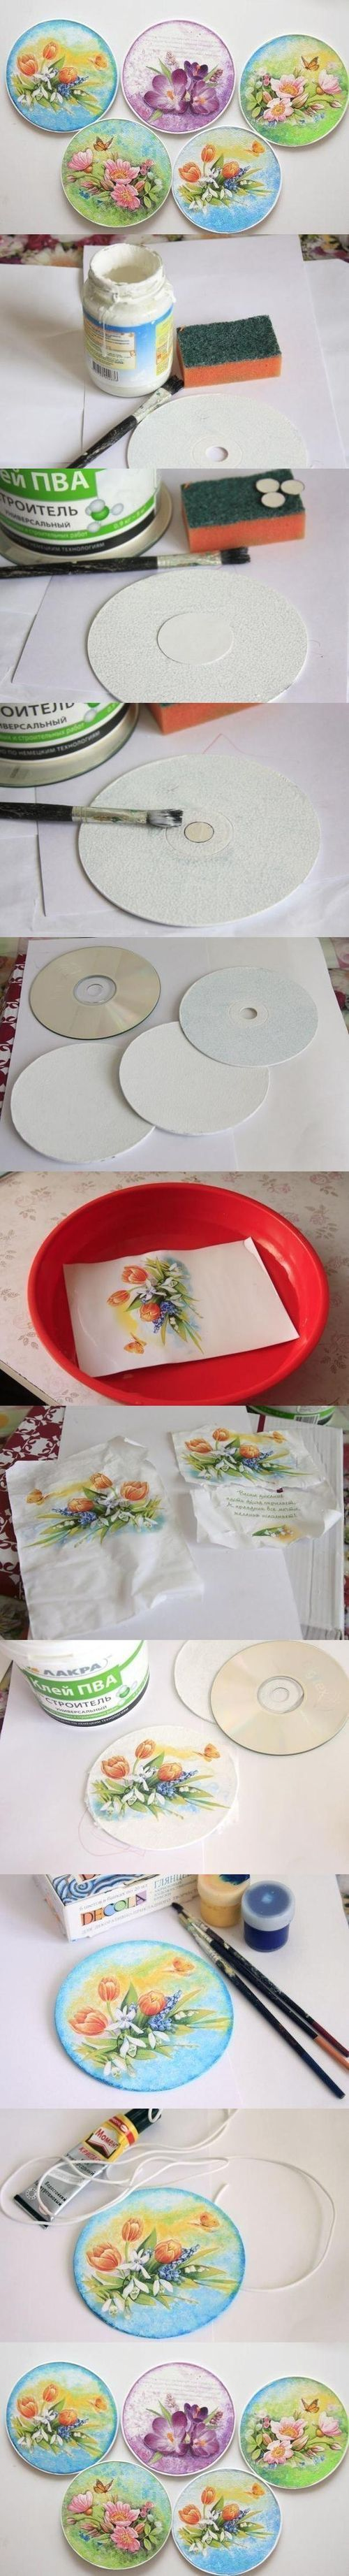 DIY Nice Old CD Paintings DIY Projects / UsefulDIY.com